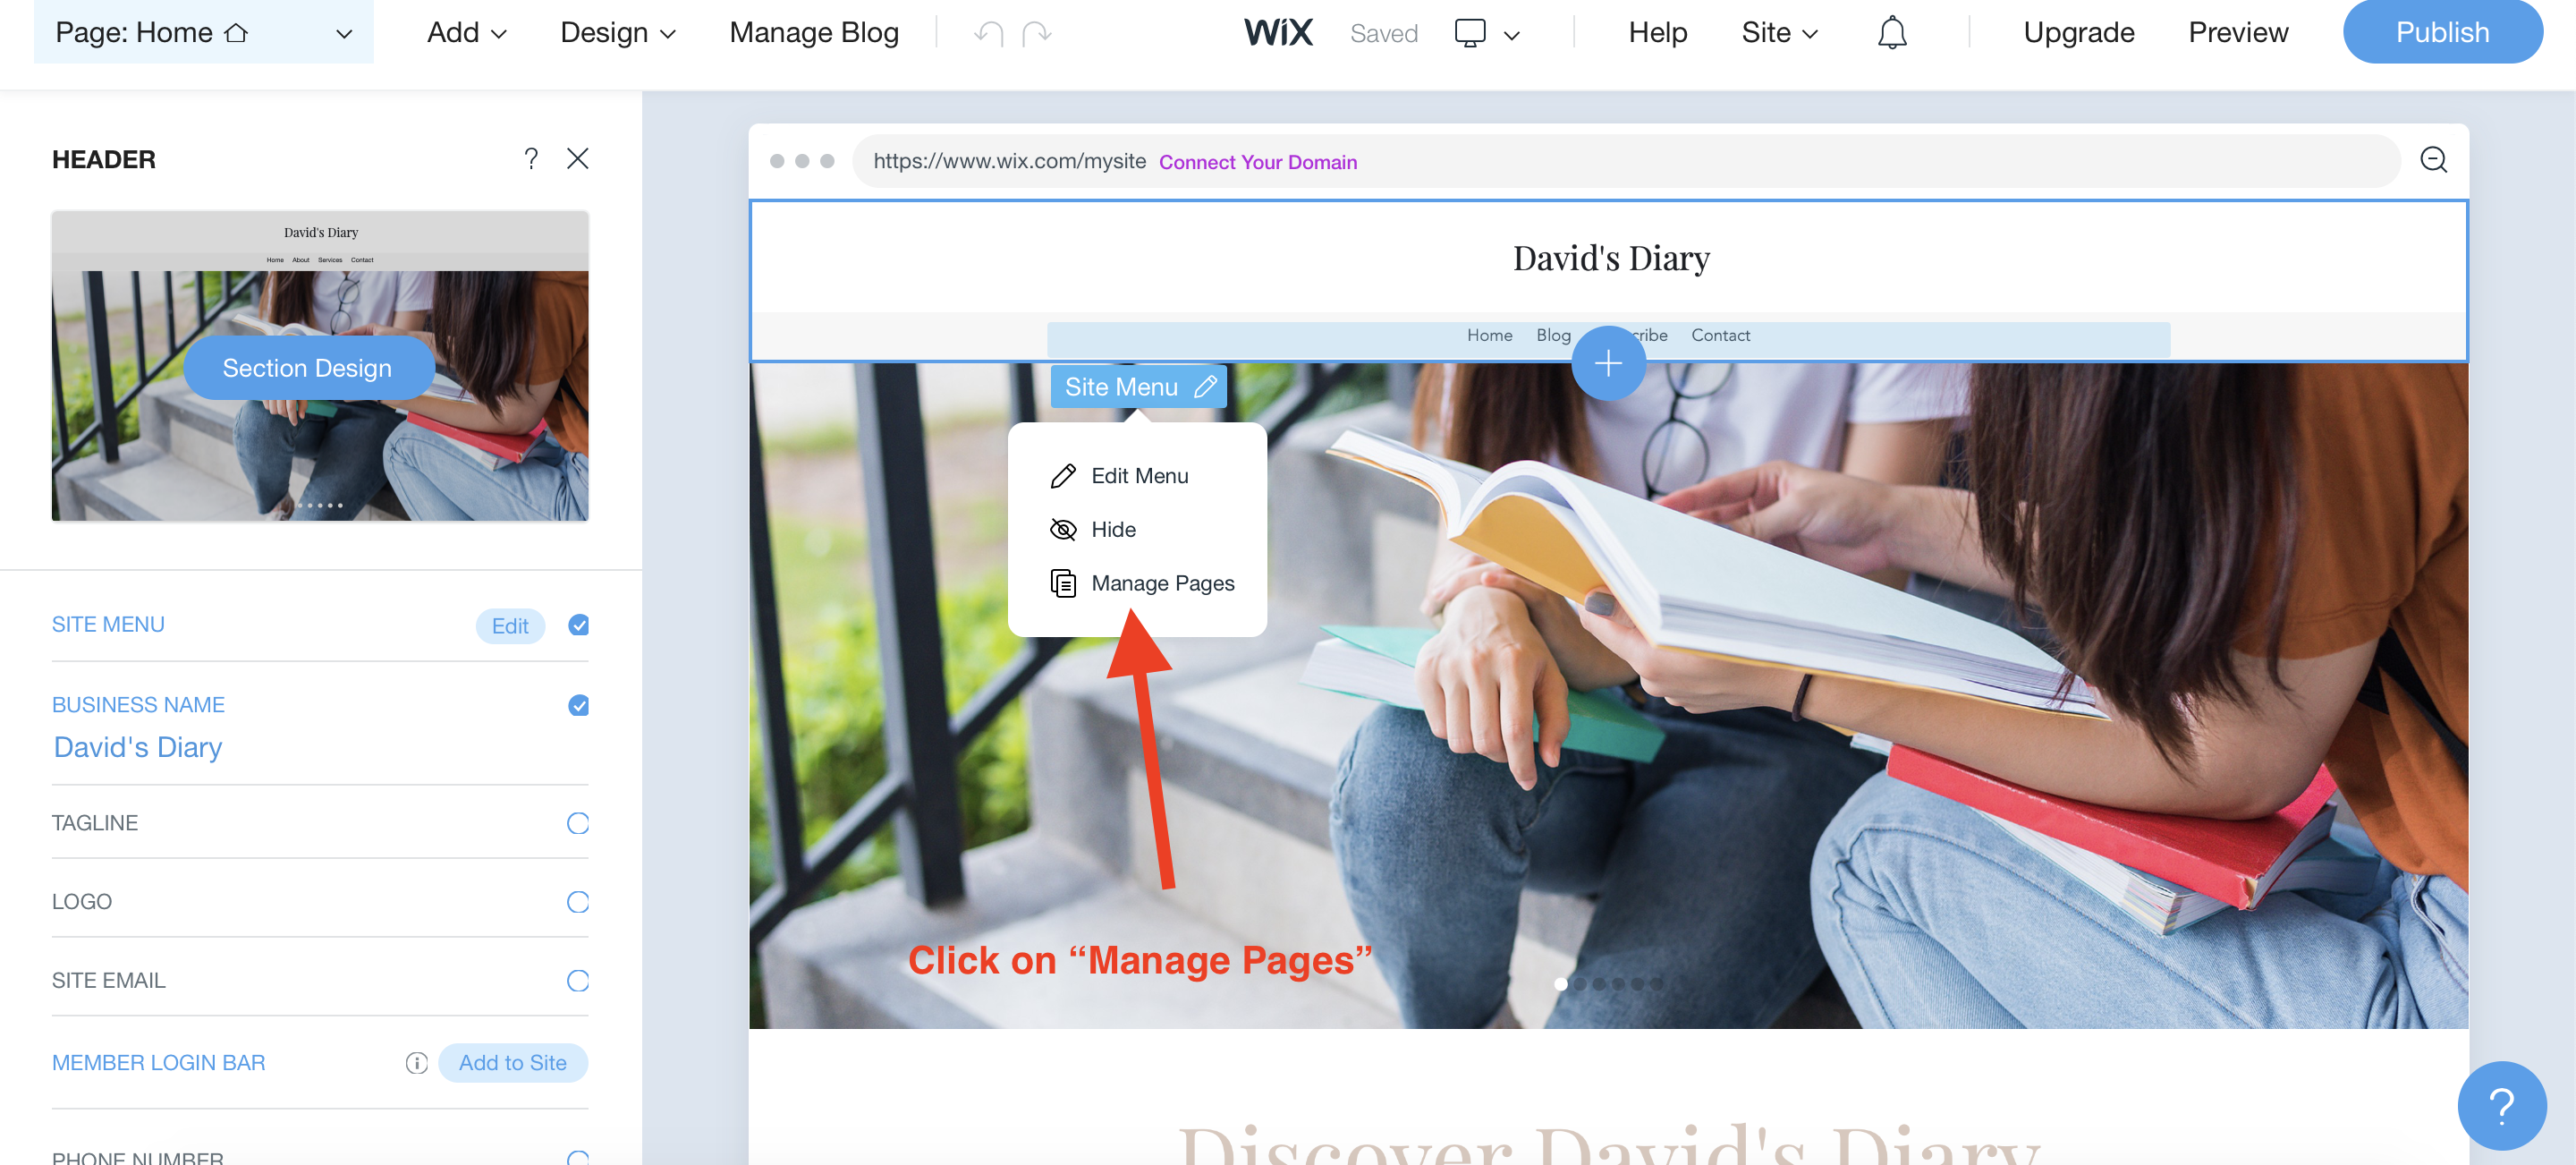 adding new pages on wix